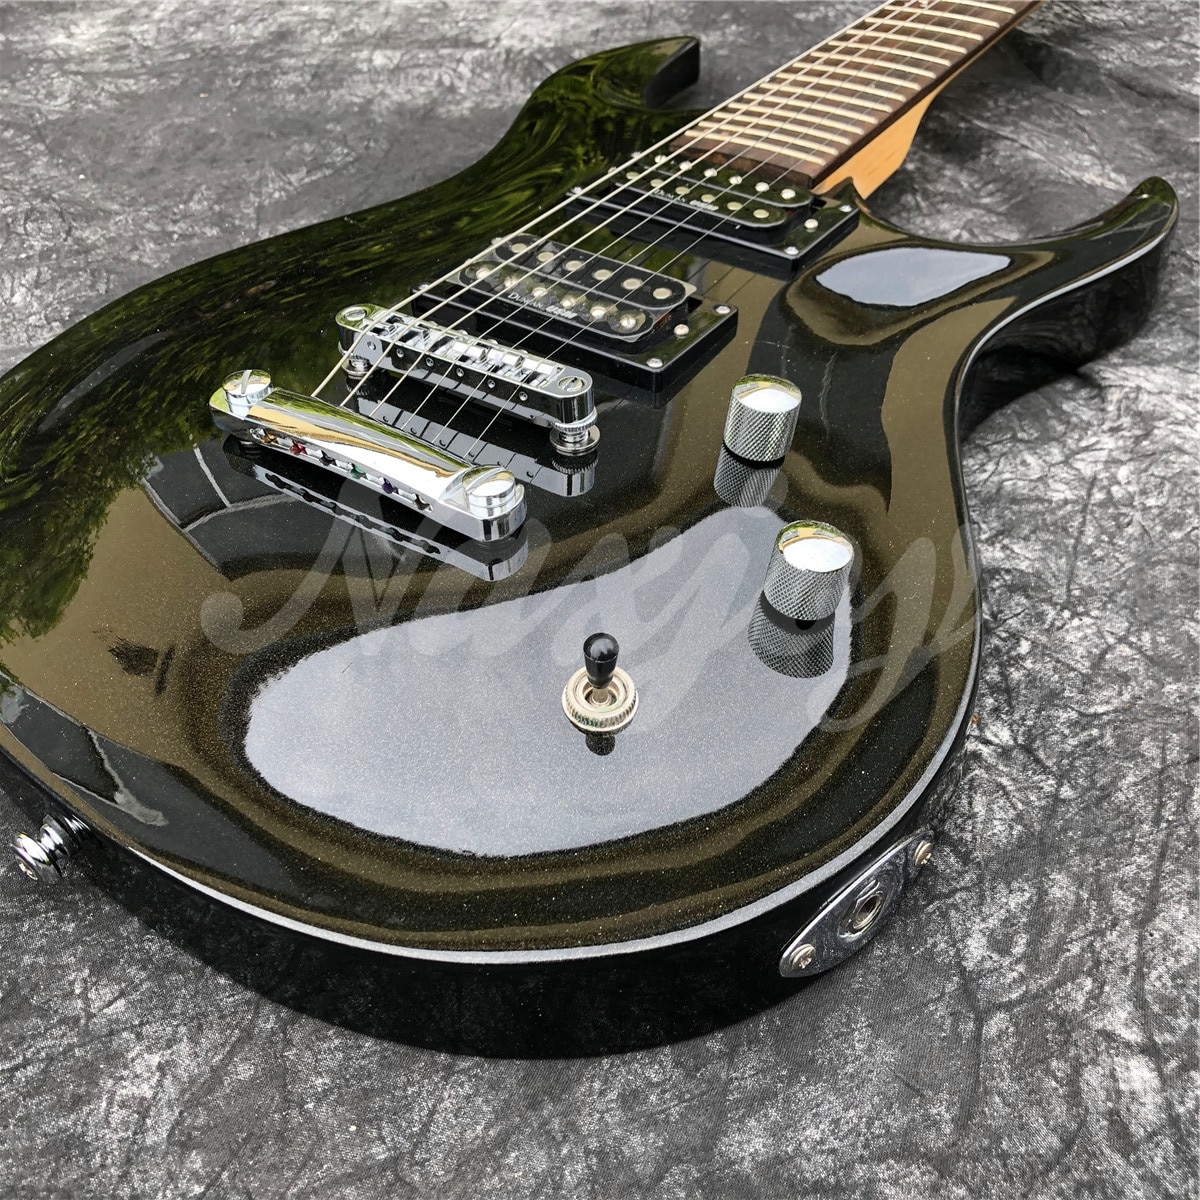 Top Qulality Glossy Black 6 String Solid Basswood Electric Guitar with Chrome Hardwares enlarge